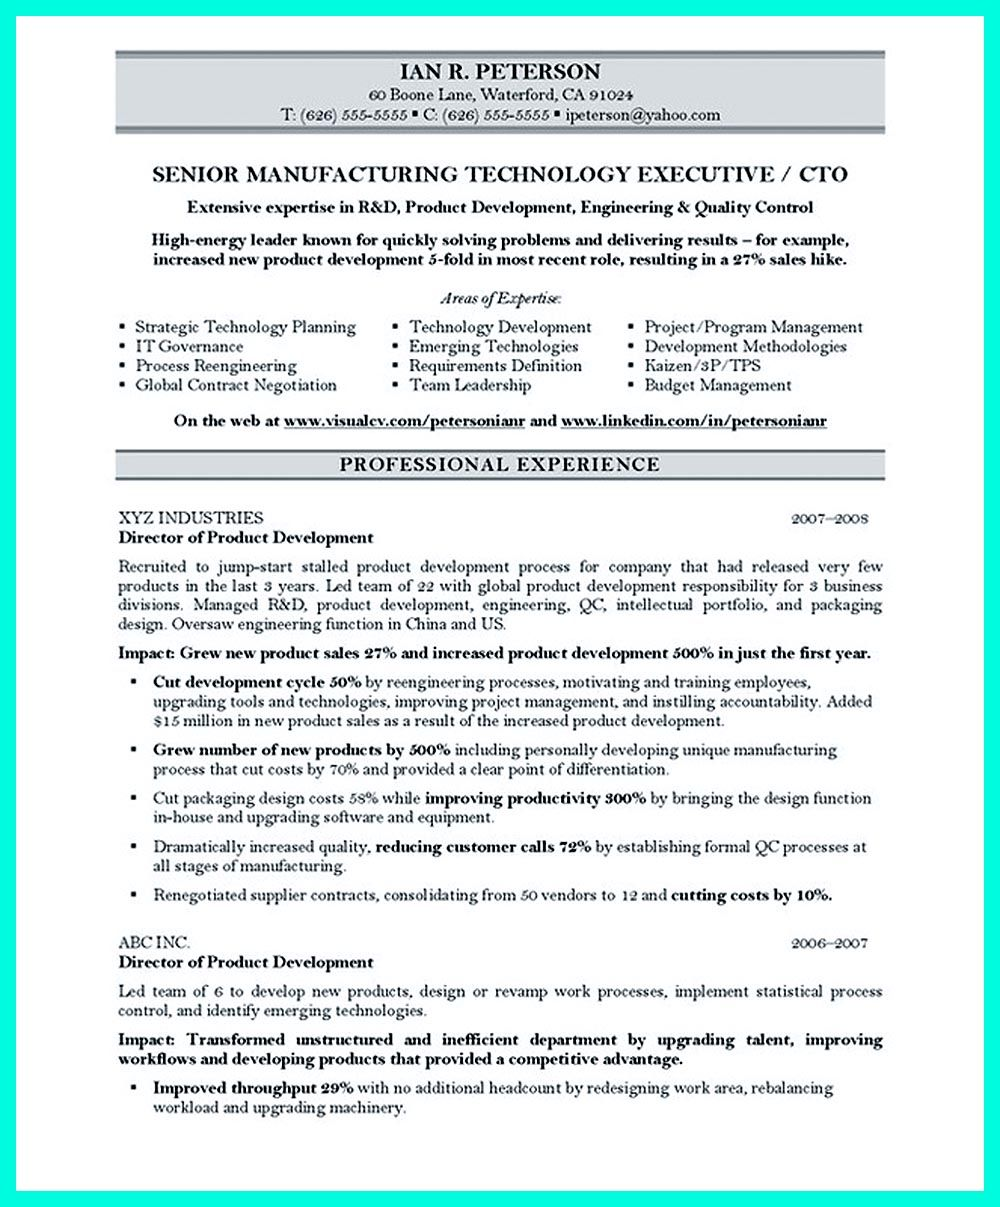 cto resume or chief technical officer resume can be considered as cto resume or chief technical officer resume can be considered as resume for senior level technology